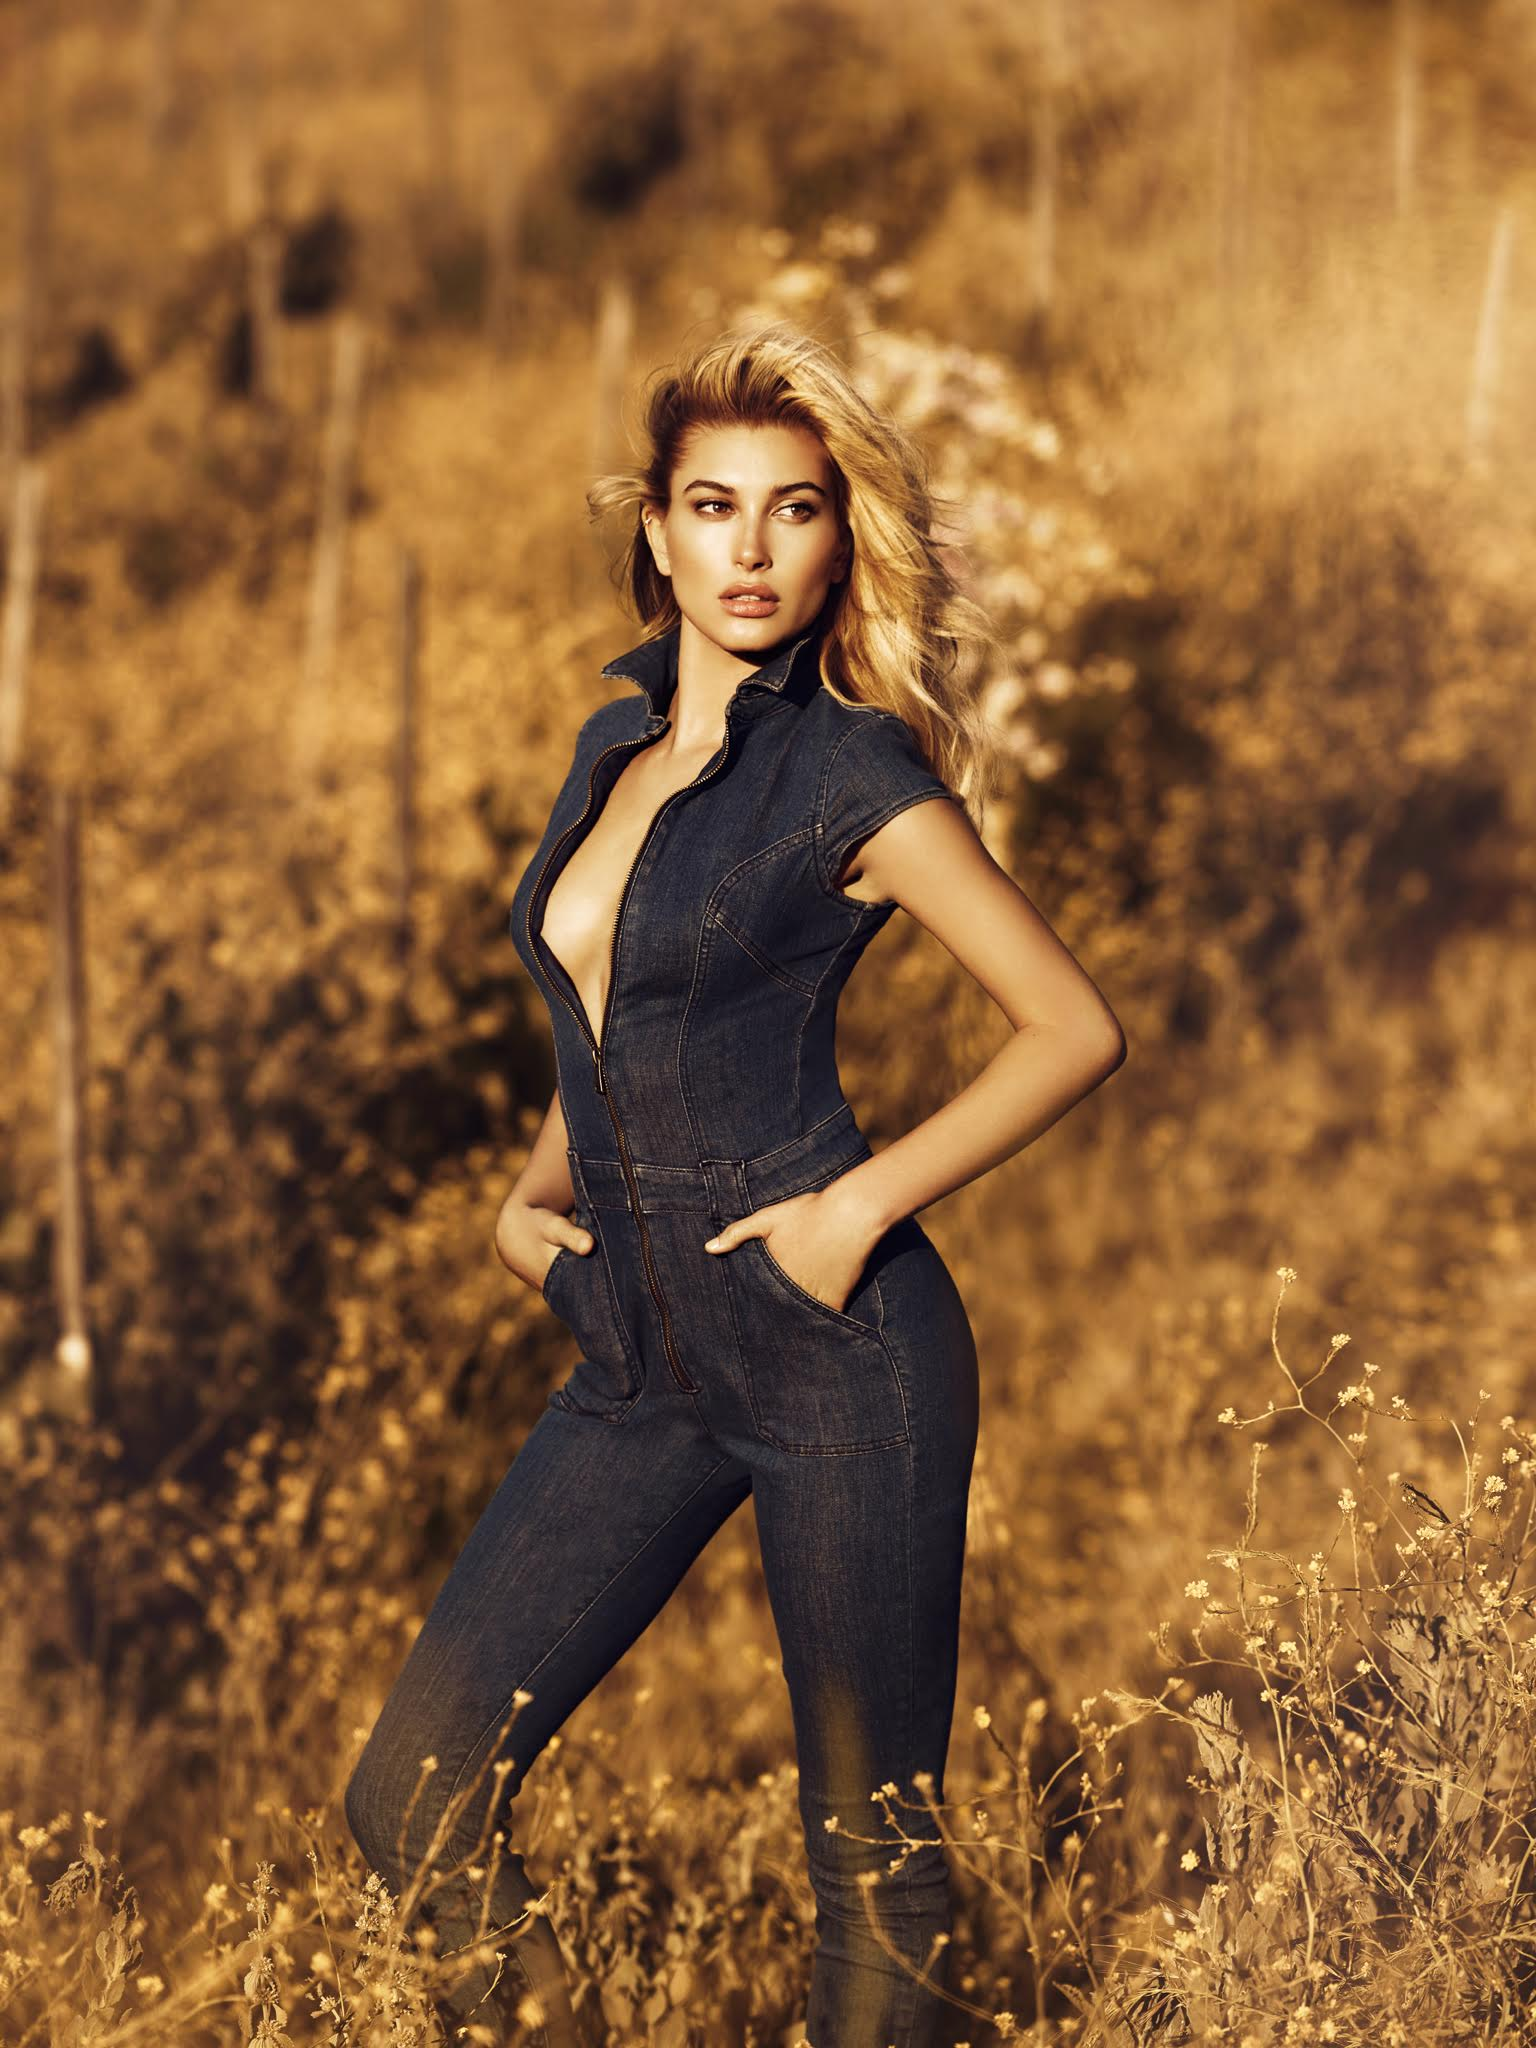 Hailey baldwin for guess nudes (26 photo), Leaked Celebrites image